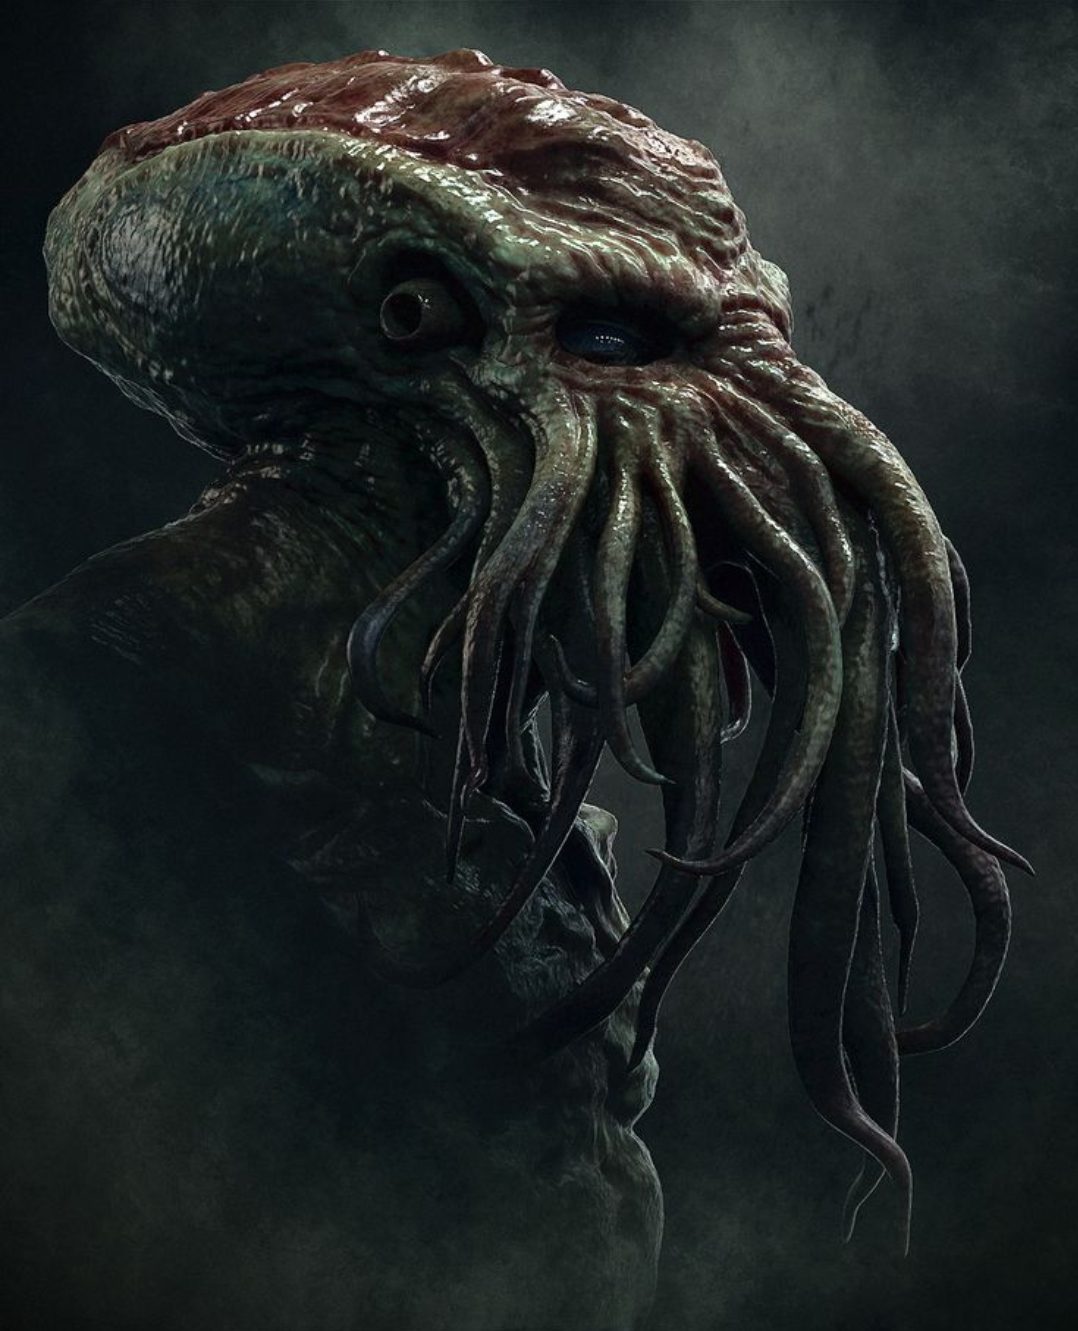 Cthulhu | The H P  Lovecraft Wiki | FANDOM powered by Wikia